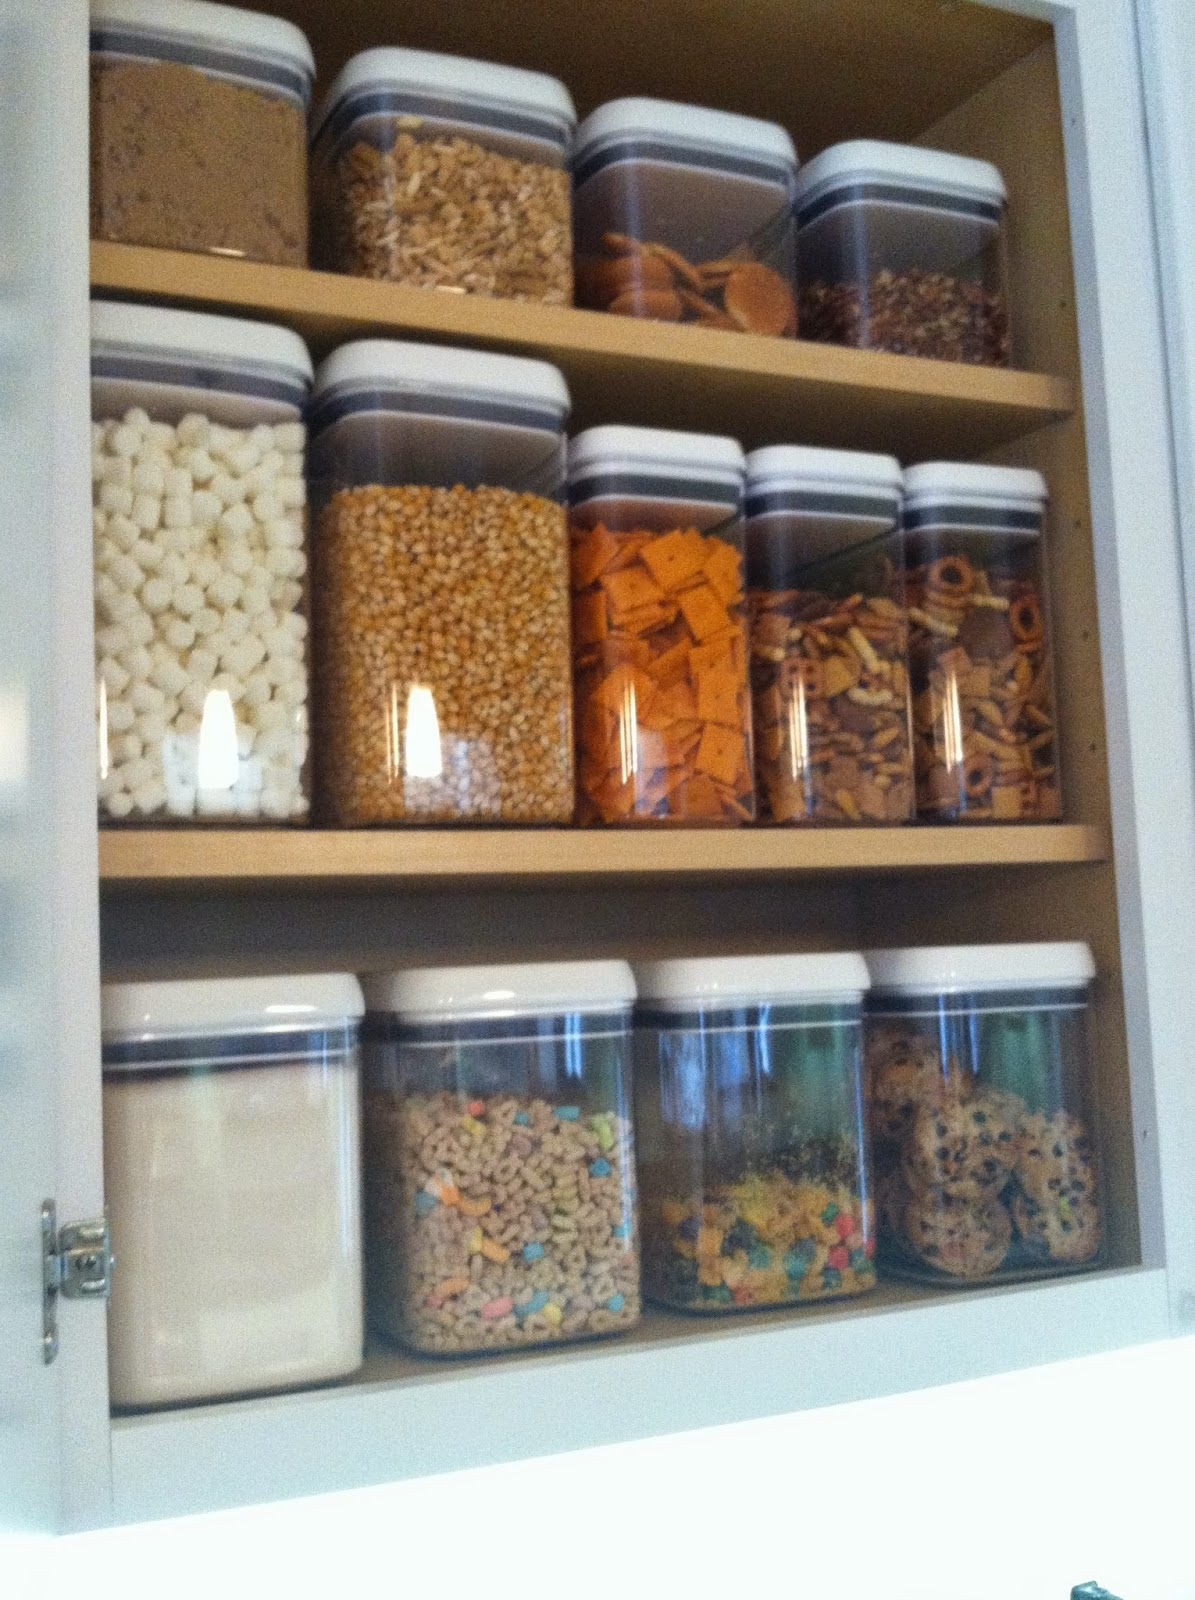 The Smart Momma Better Homes And Gardens Flip Tite Containers